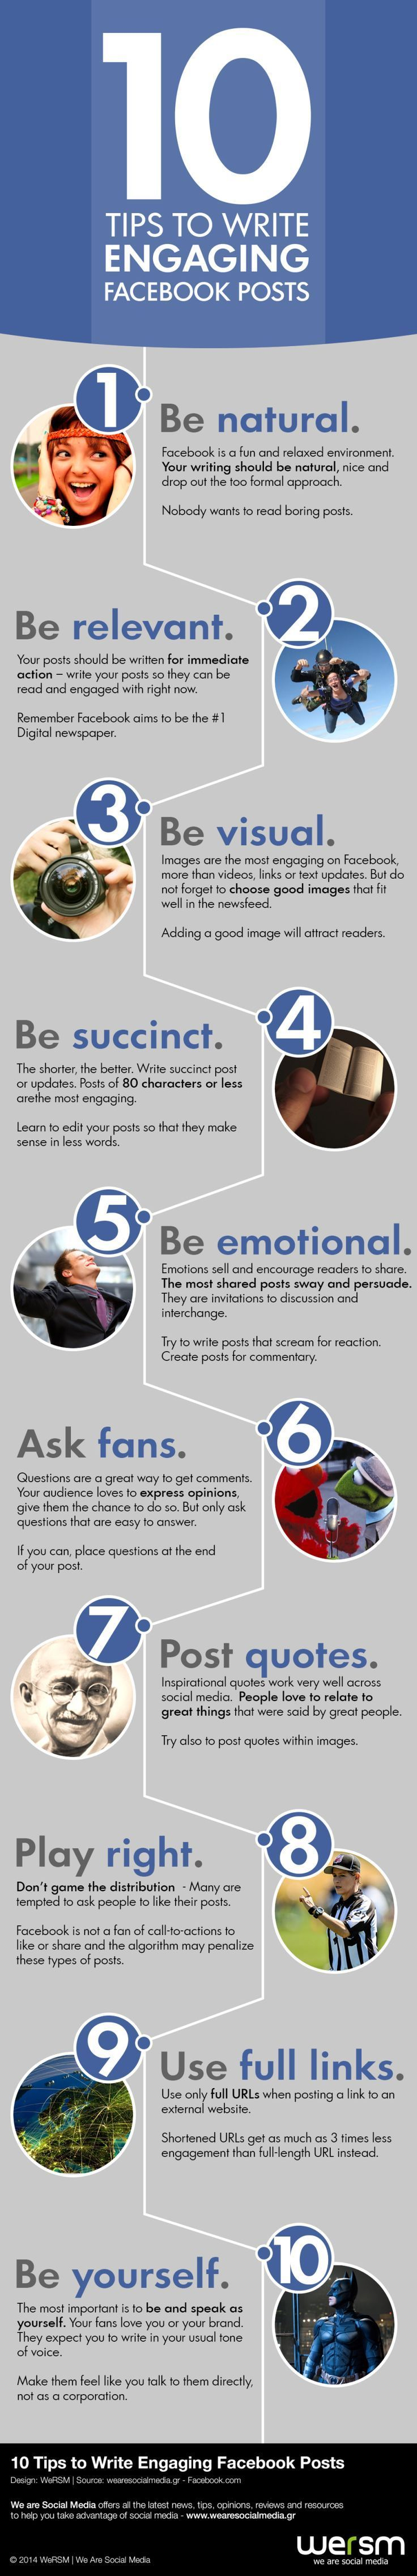 How to Write Engaging Facebook Posts #SEOPluz